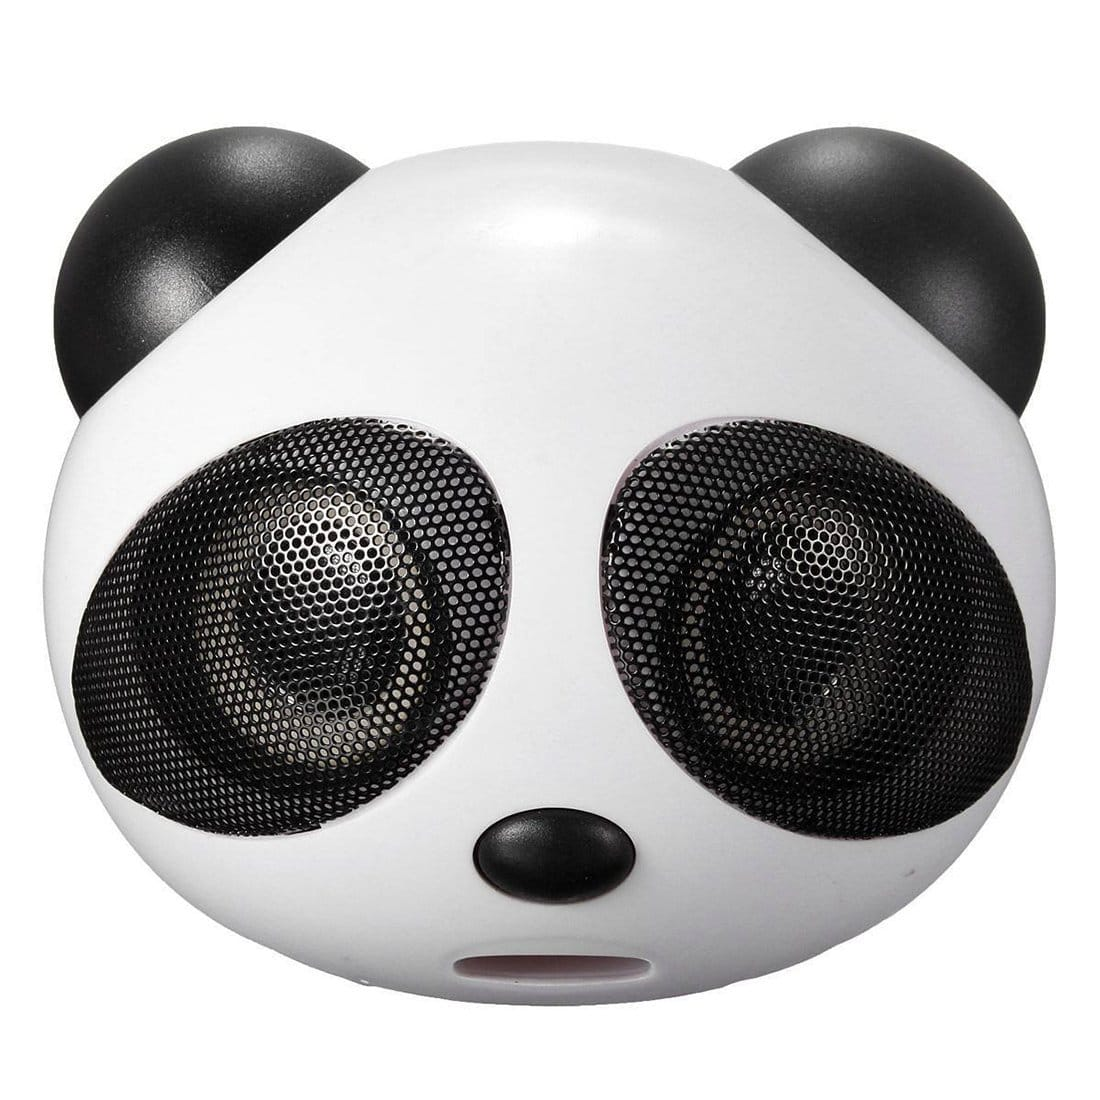 enceinte panda objet gadget mr etrange. Black Bedroom Furniture Sets. Home Design Ideas